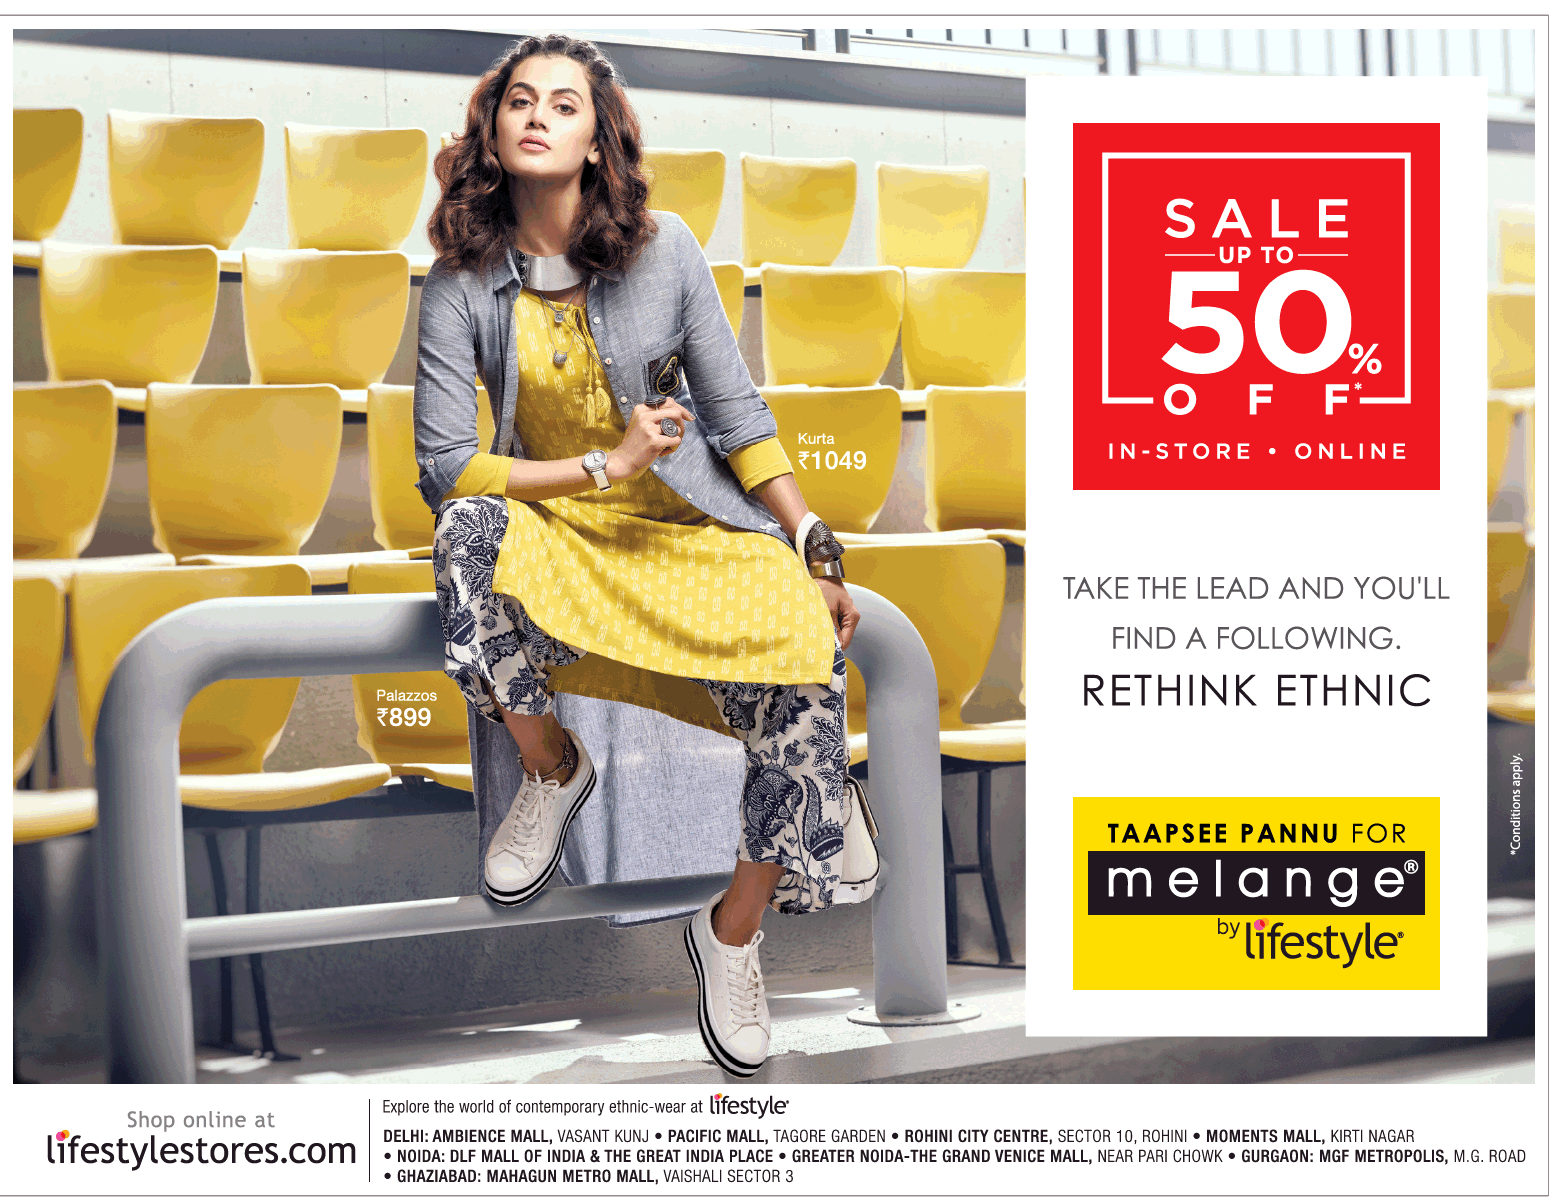 9e0c3002e91d Taapsee Pannu For Melange By Lifestyle Sale Up To 50% Off Ad ...